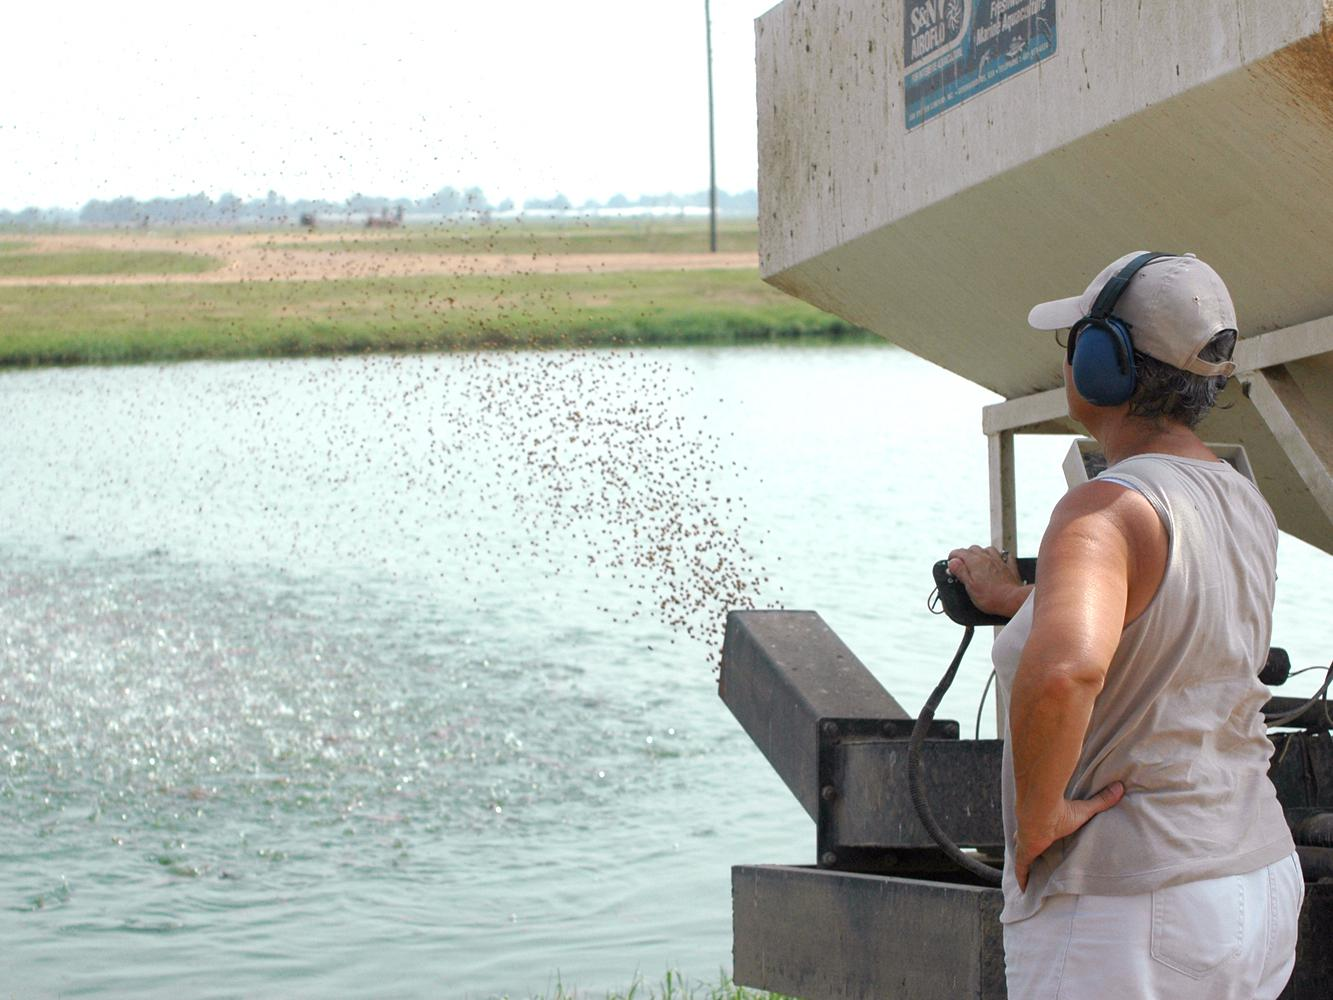 Catfish that are bringing record high prices consume feed, which is also at its highest levels. Sue Kingsbury, now a retired Mississippi State University researcher, is feeding catfish in a pond at the Delta Research and Extension Center in Stoneville. Catfish feed, which is the biggest production expense, has increased 120 percent in the last decade. (File photo by Rebekah Ray)